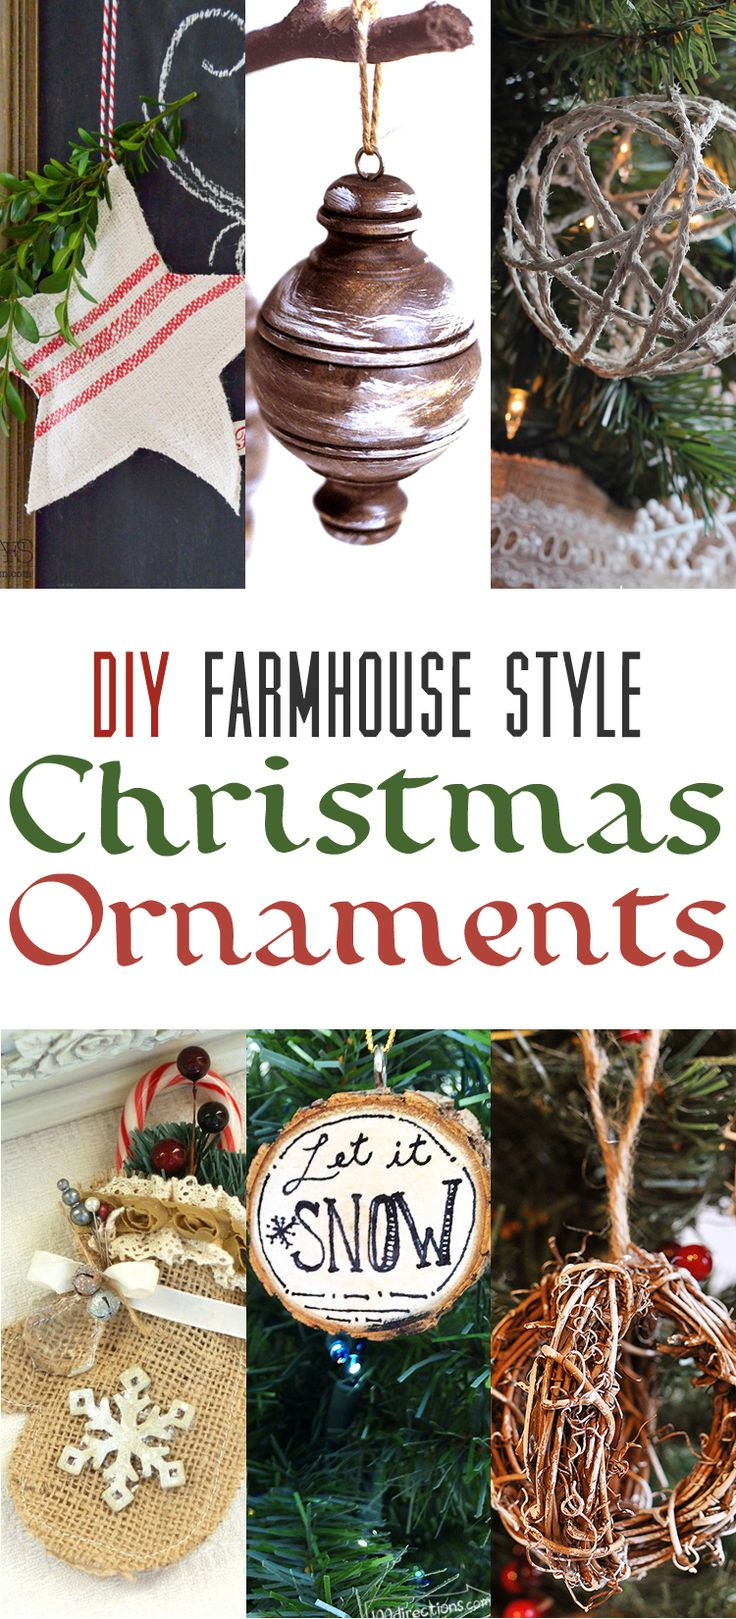 All of you Farmhouse Lovers out there are going to flip for this collection of DIY Farmhouse Style Christmas Ornaments! Sit back and ENJOY!